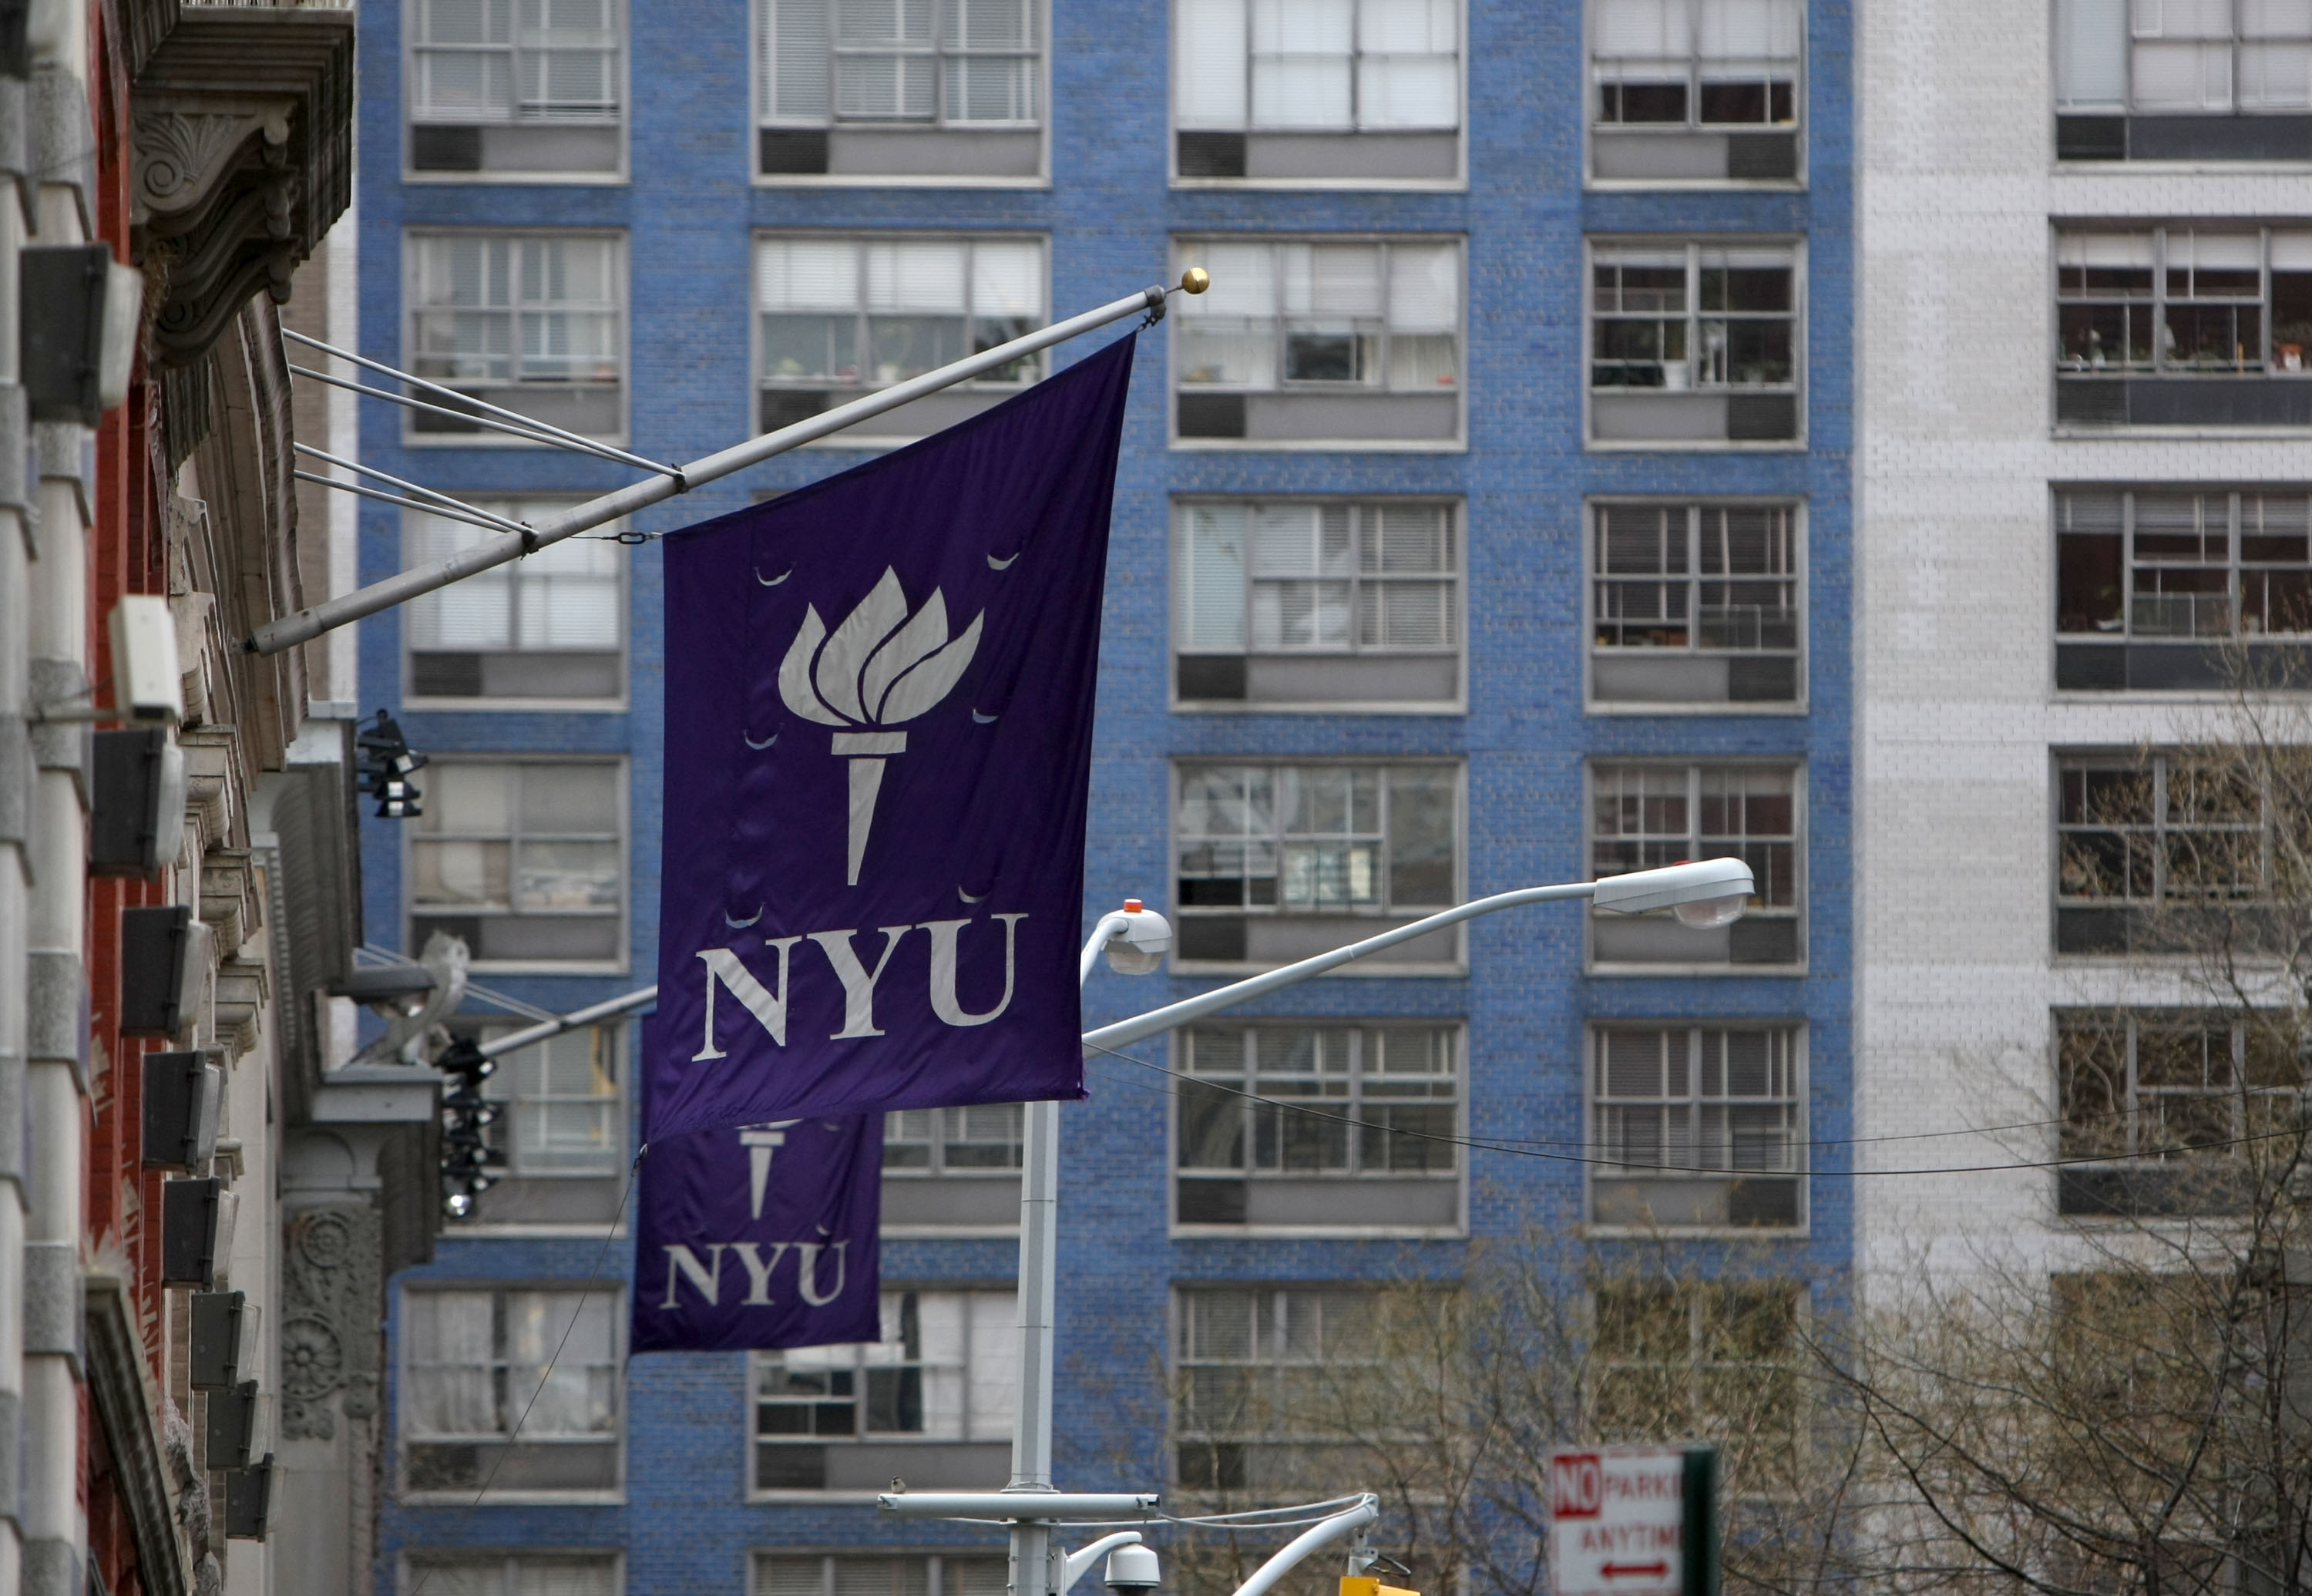 New York University banners hang from a building in New York, U.S., on Monday, April 5, 2010.